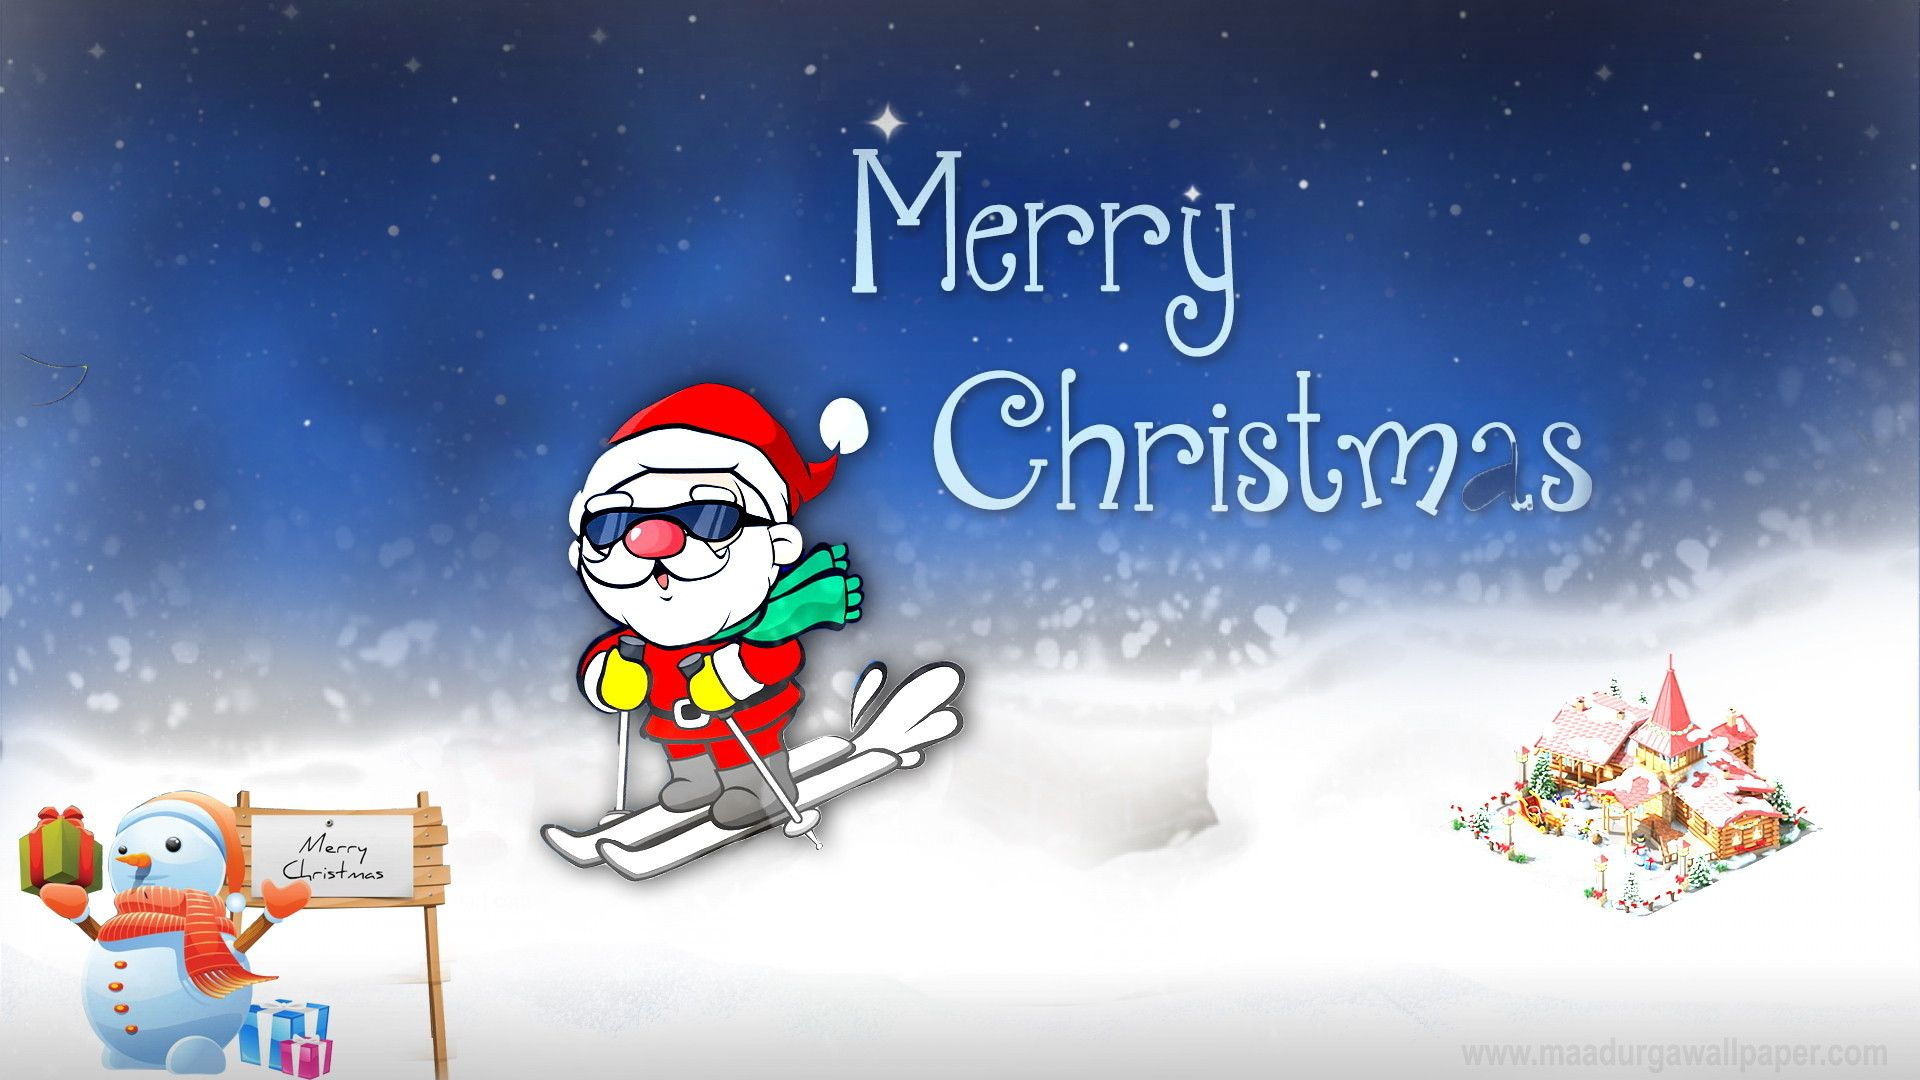 Merry Christmas HD Wallpaper, Beautiful Pictures & Hd